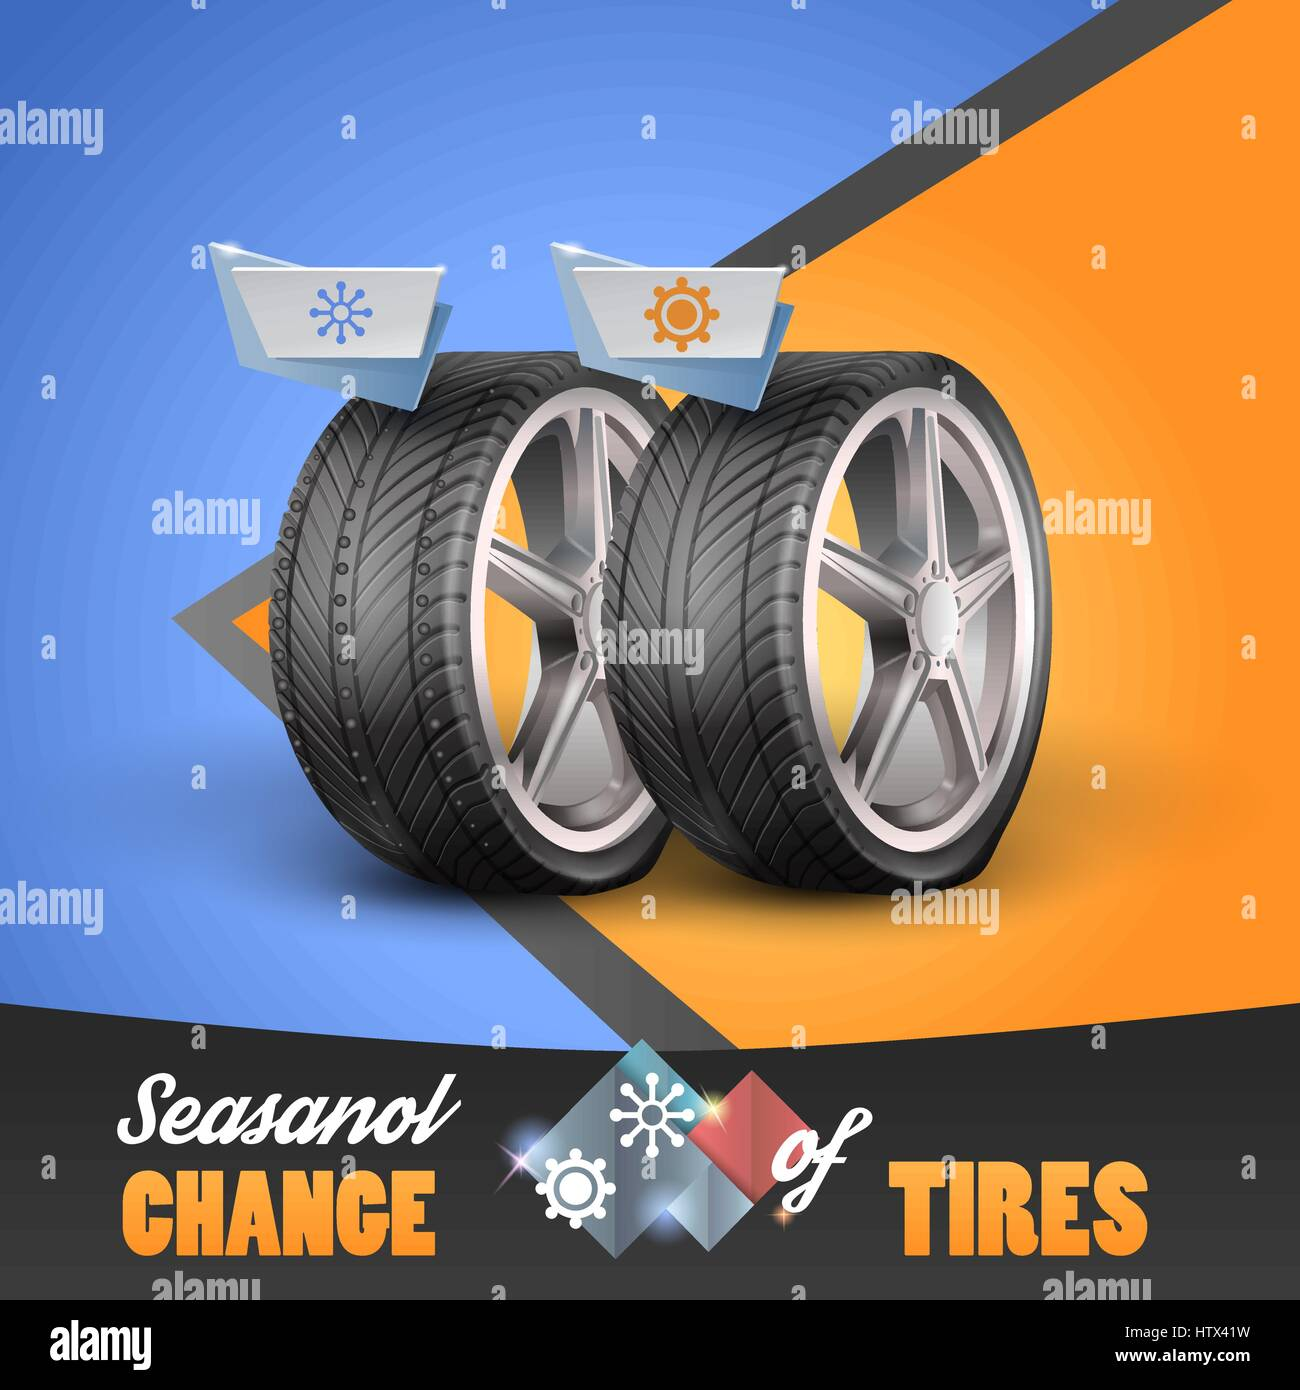 Replacement tires for the sesanol specified on label wheel. Vector illustration Stock Vector